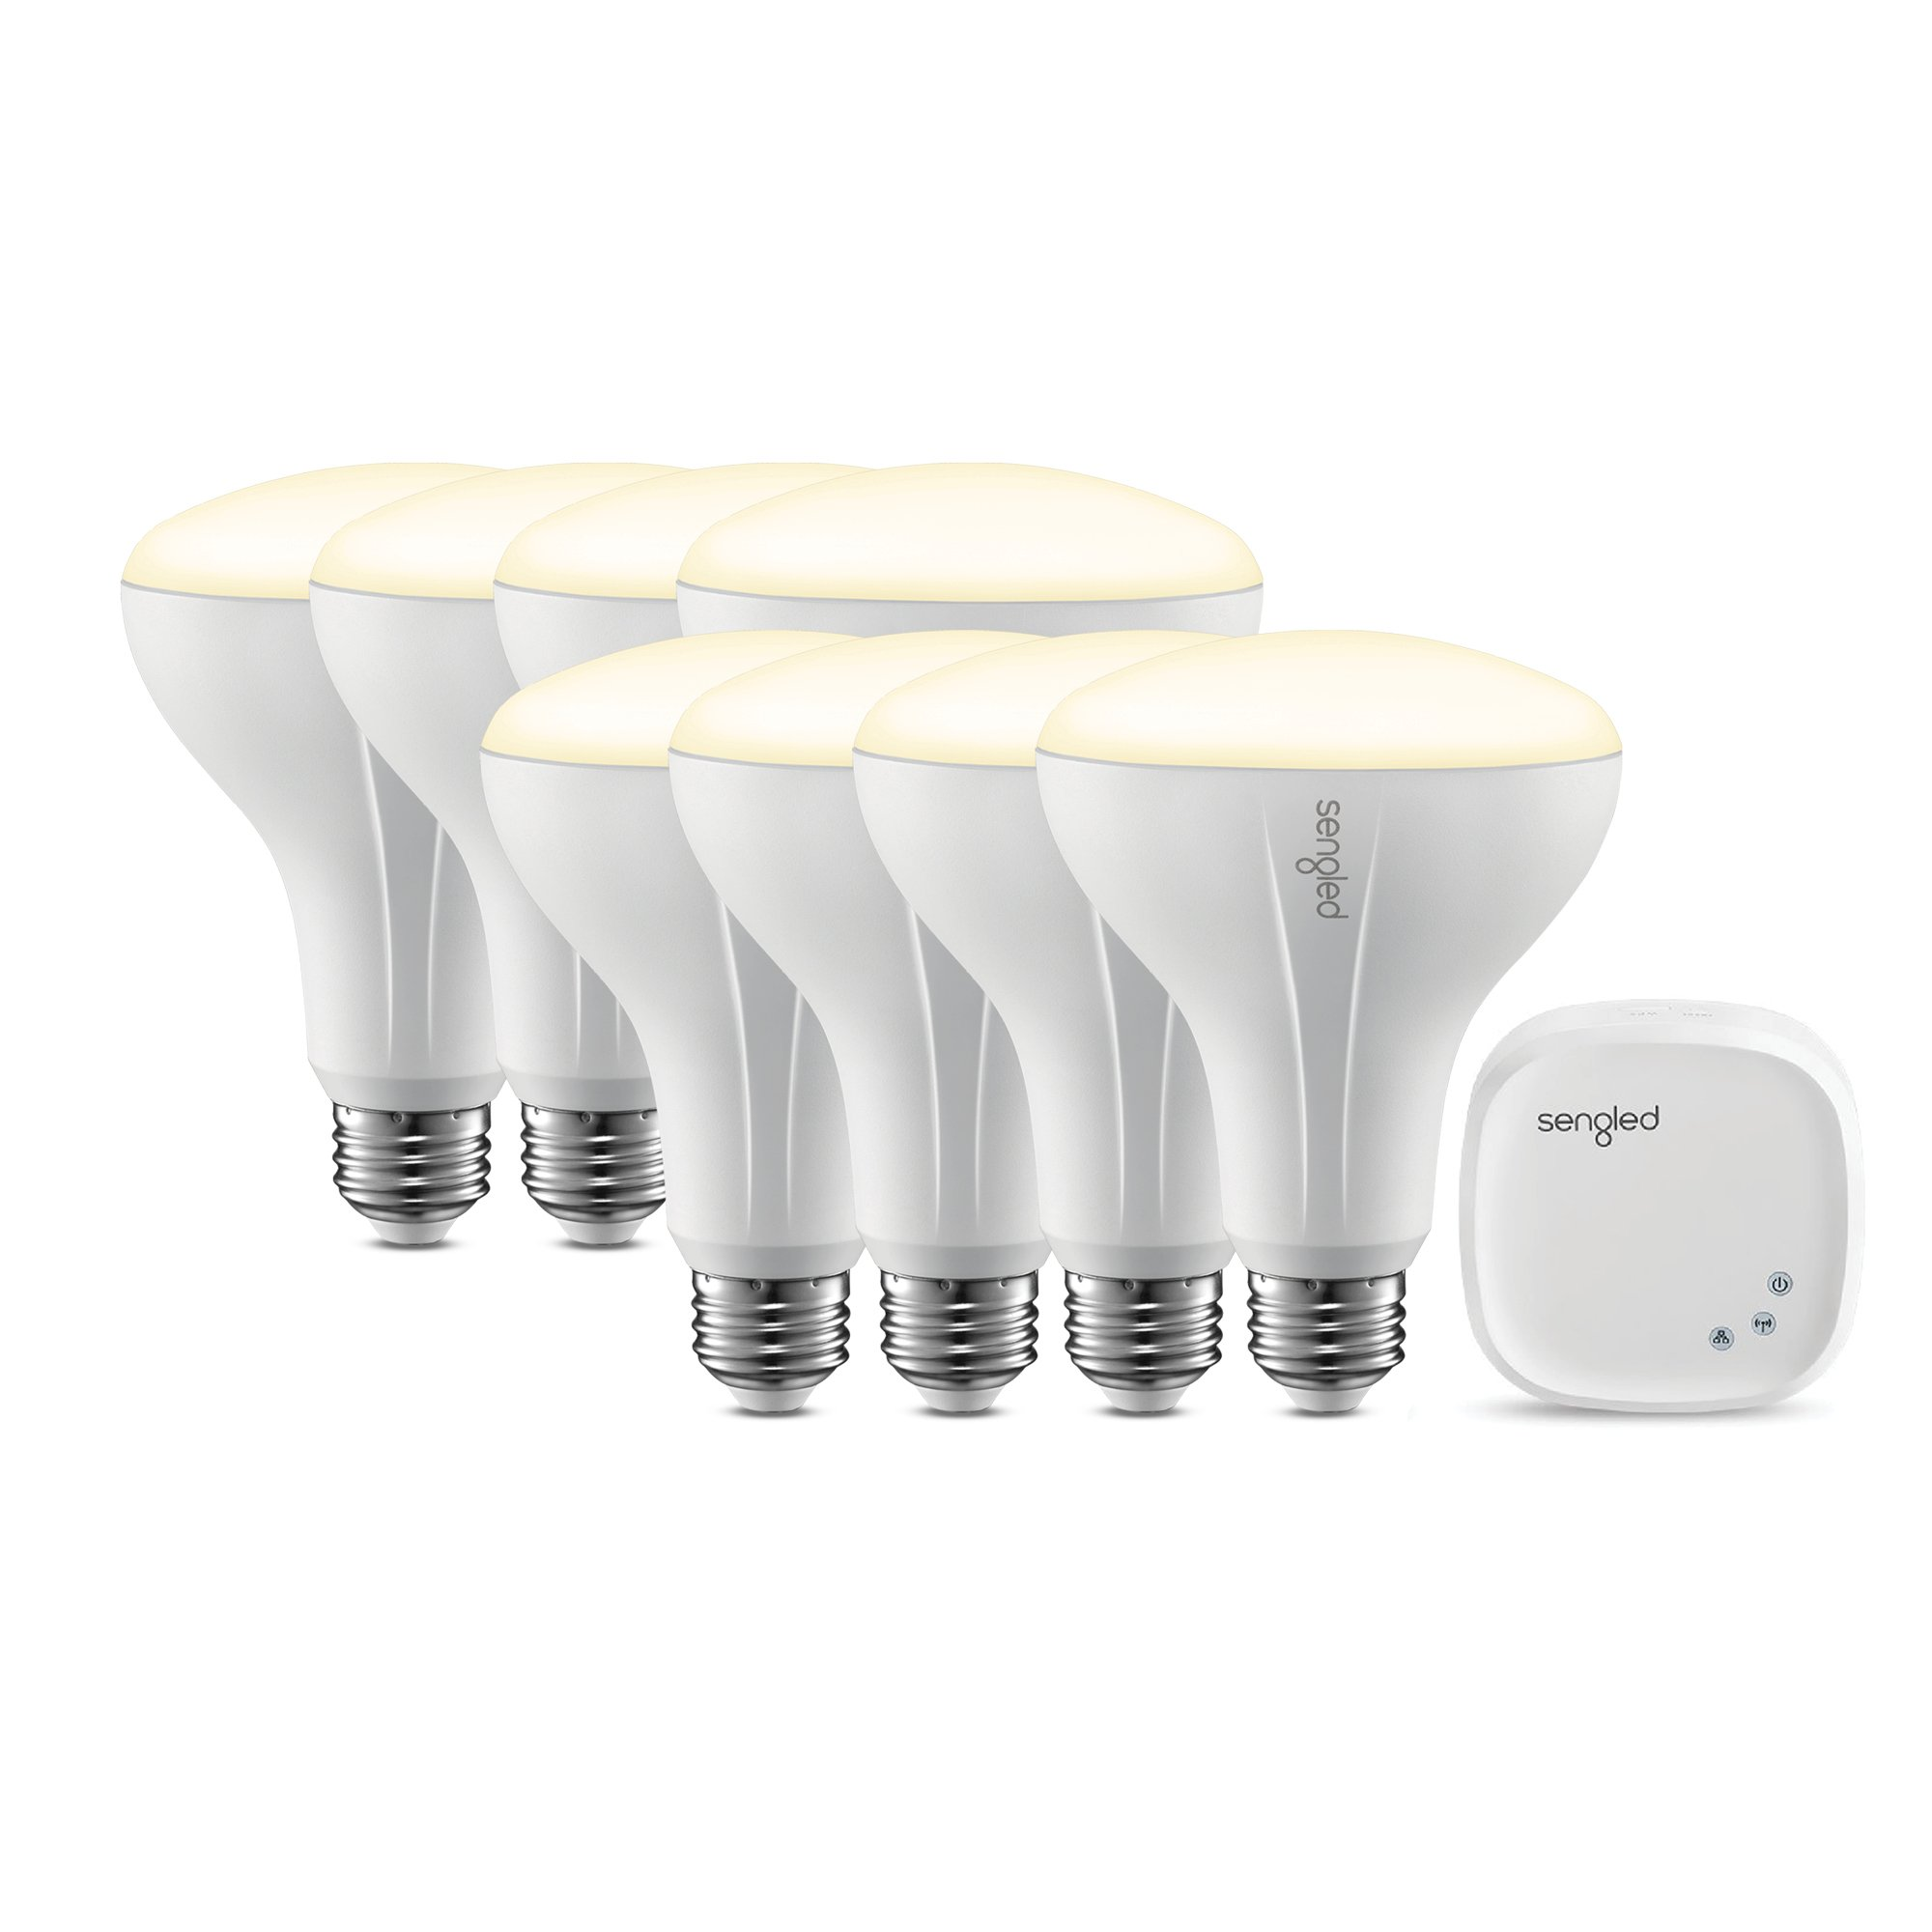 Element Classic by Sengled - Starter Kit (8 BR30 bulbs + hub) - Soft White 2700K Smart LED, Works with Alexa & Google Assistant by Sengled (Image #1)